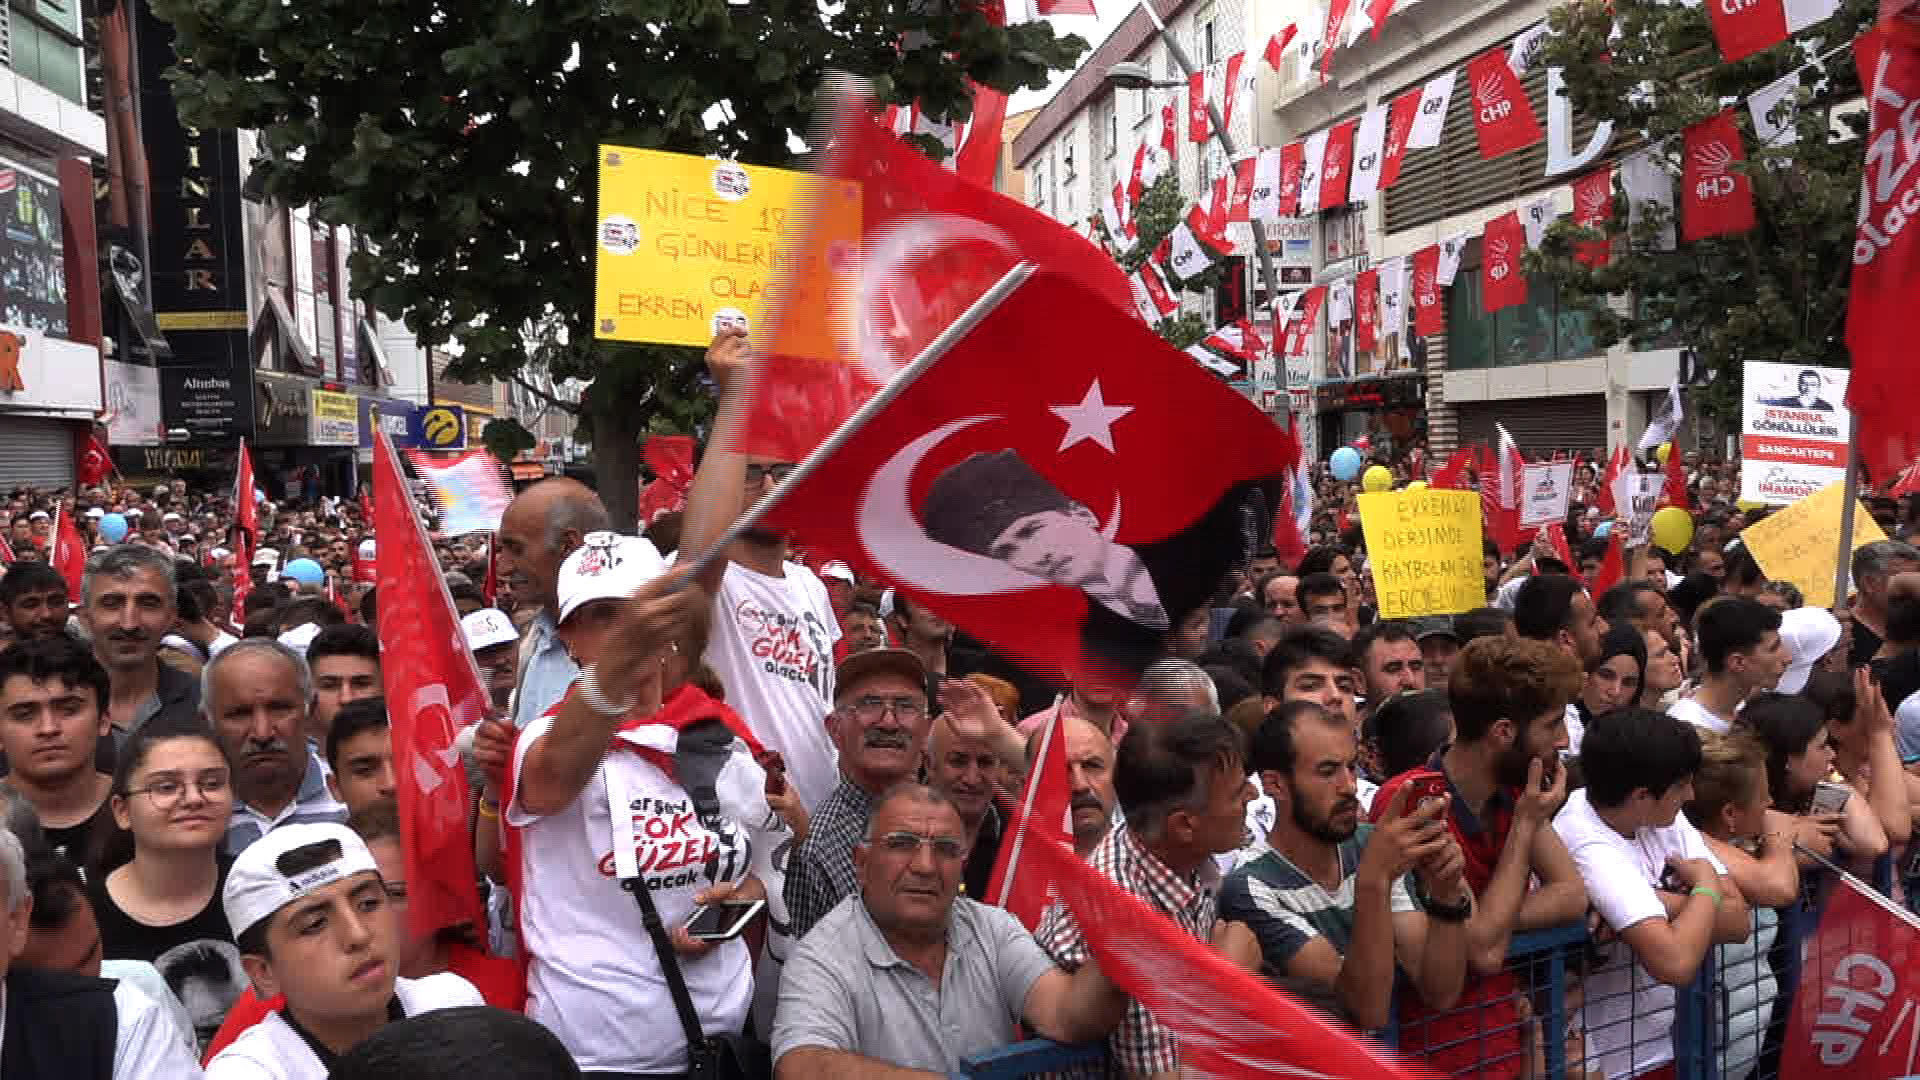 Thousands turn out in their thousands to see opposition candidate Ekrem Imamoglu across Istanbul